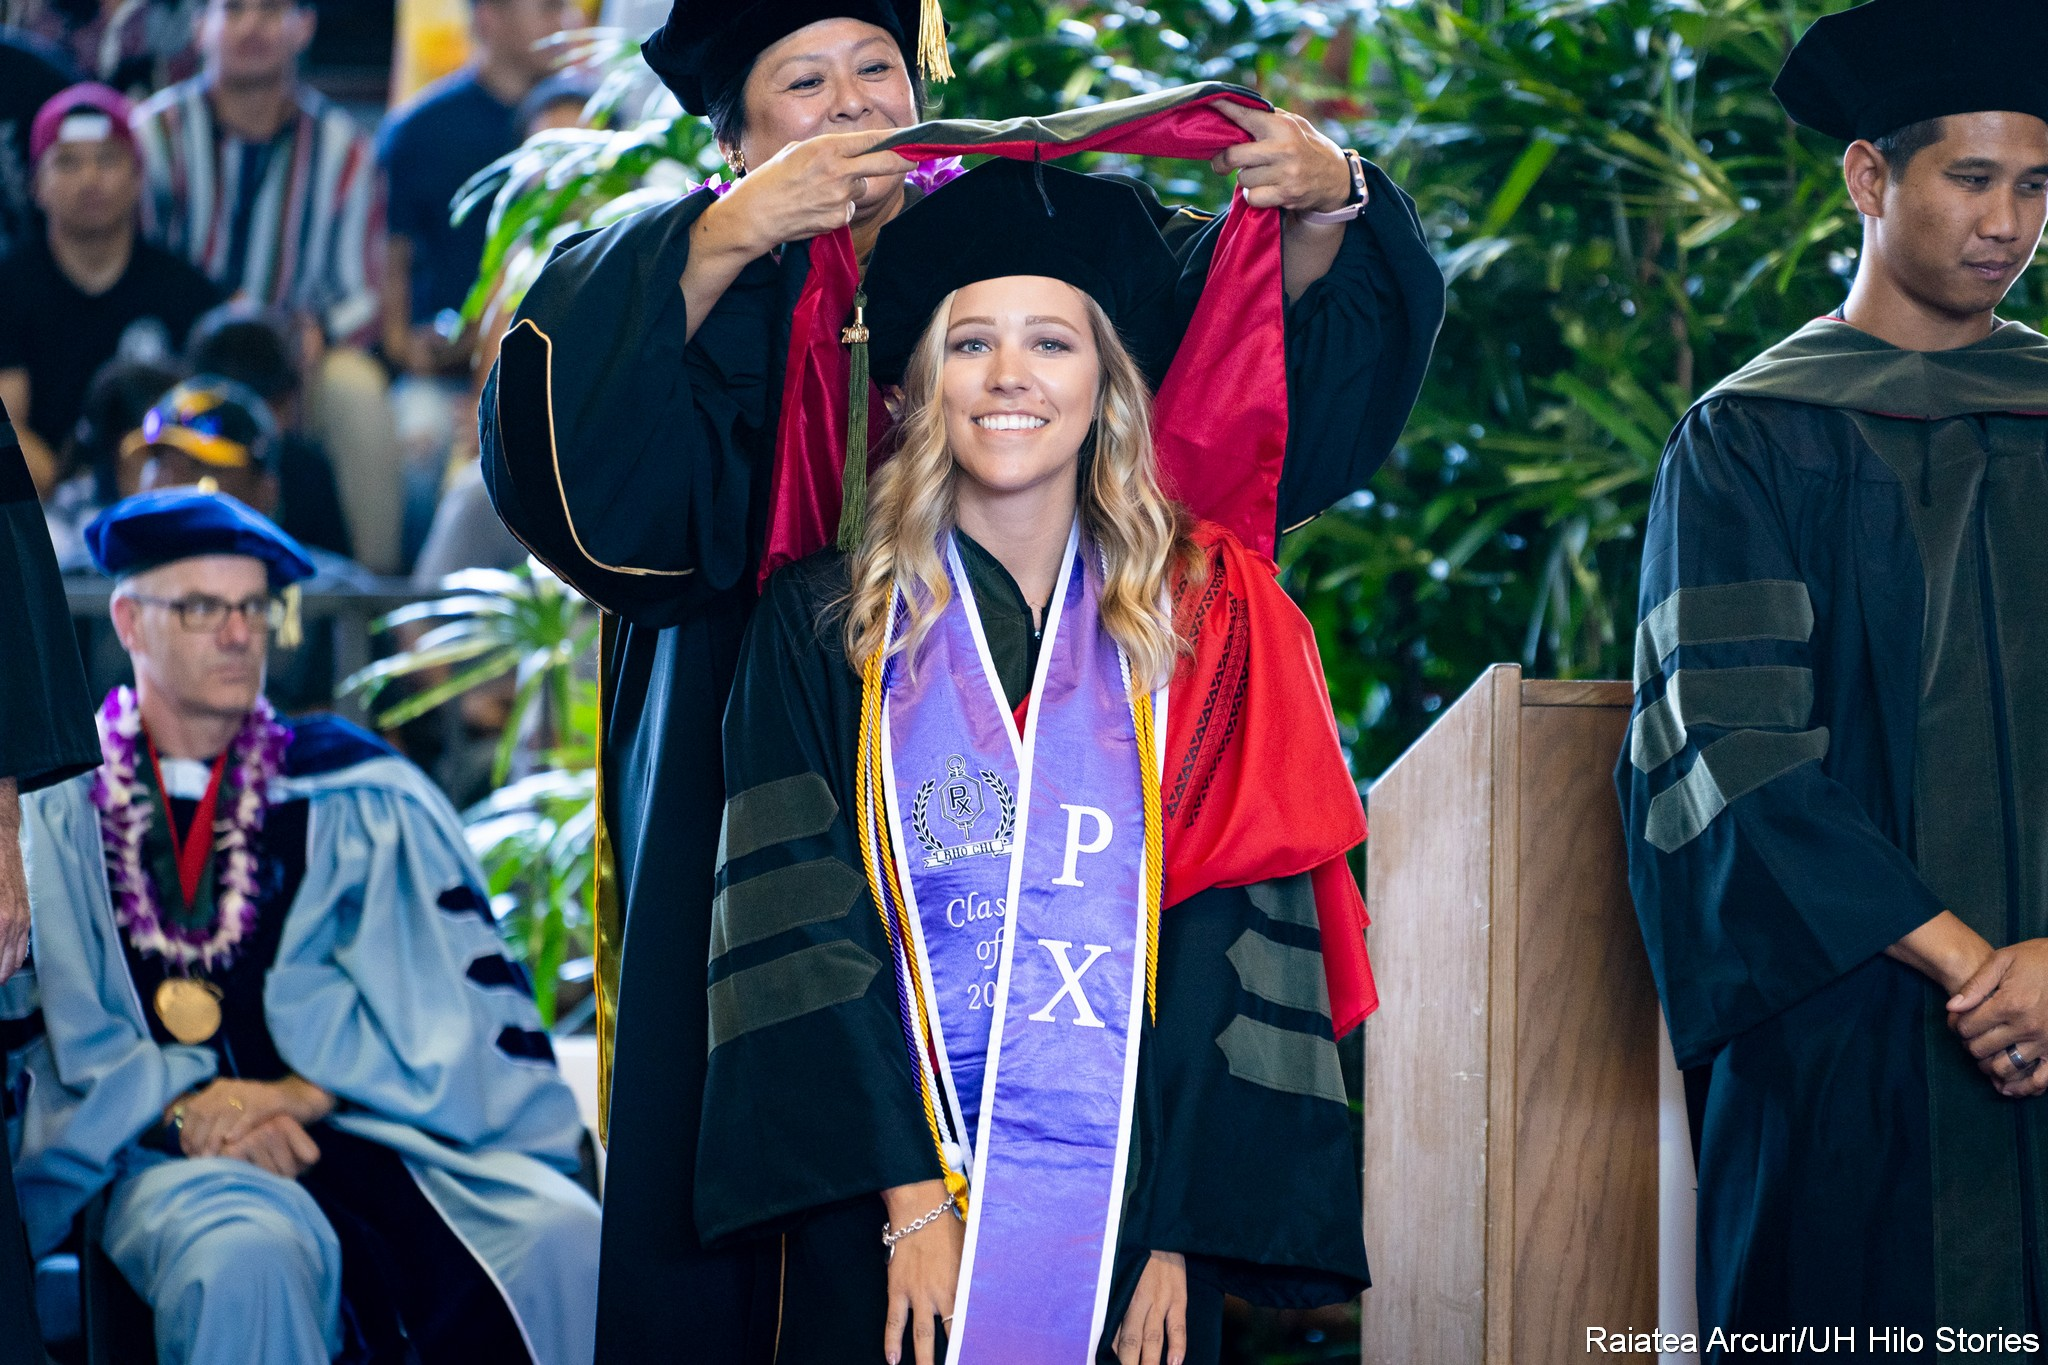 While standing behind student, dean raises hood up and over the head of a graduate.